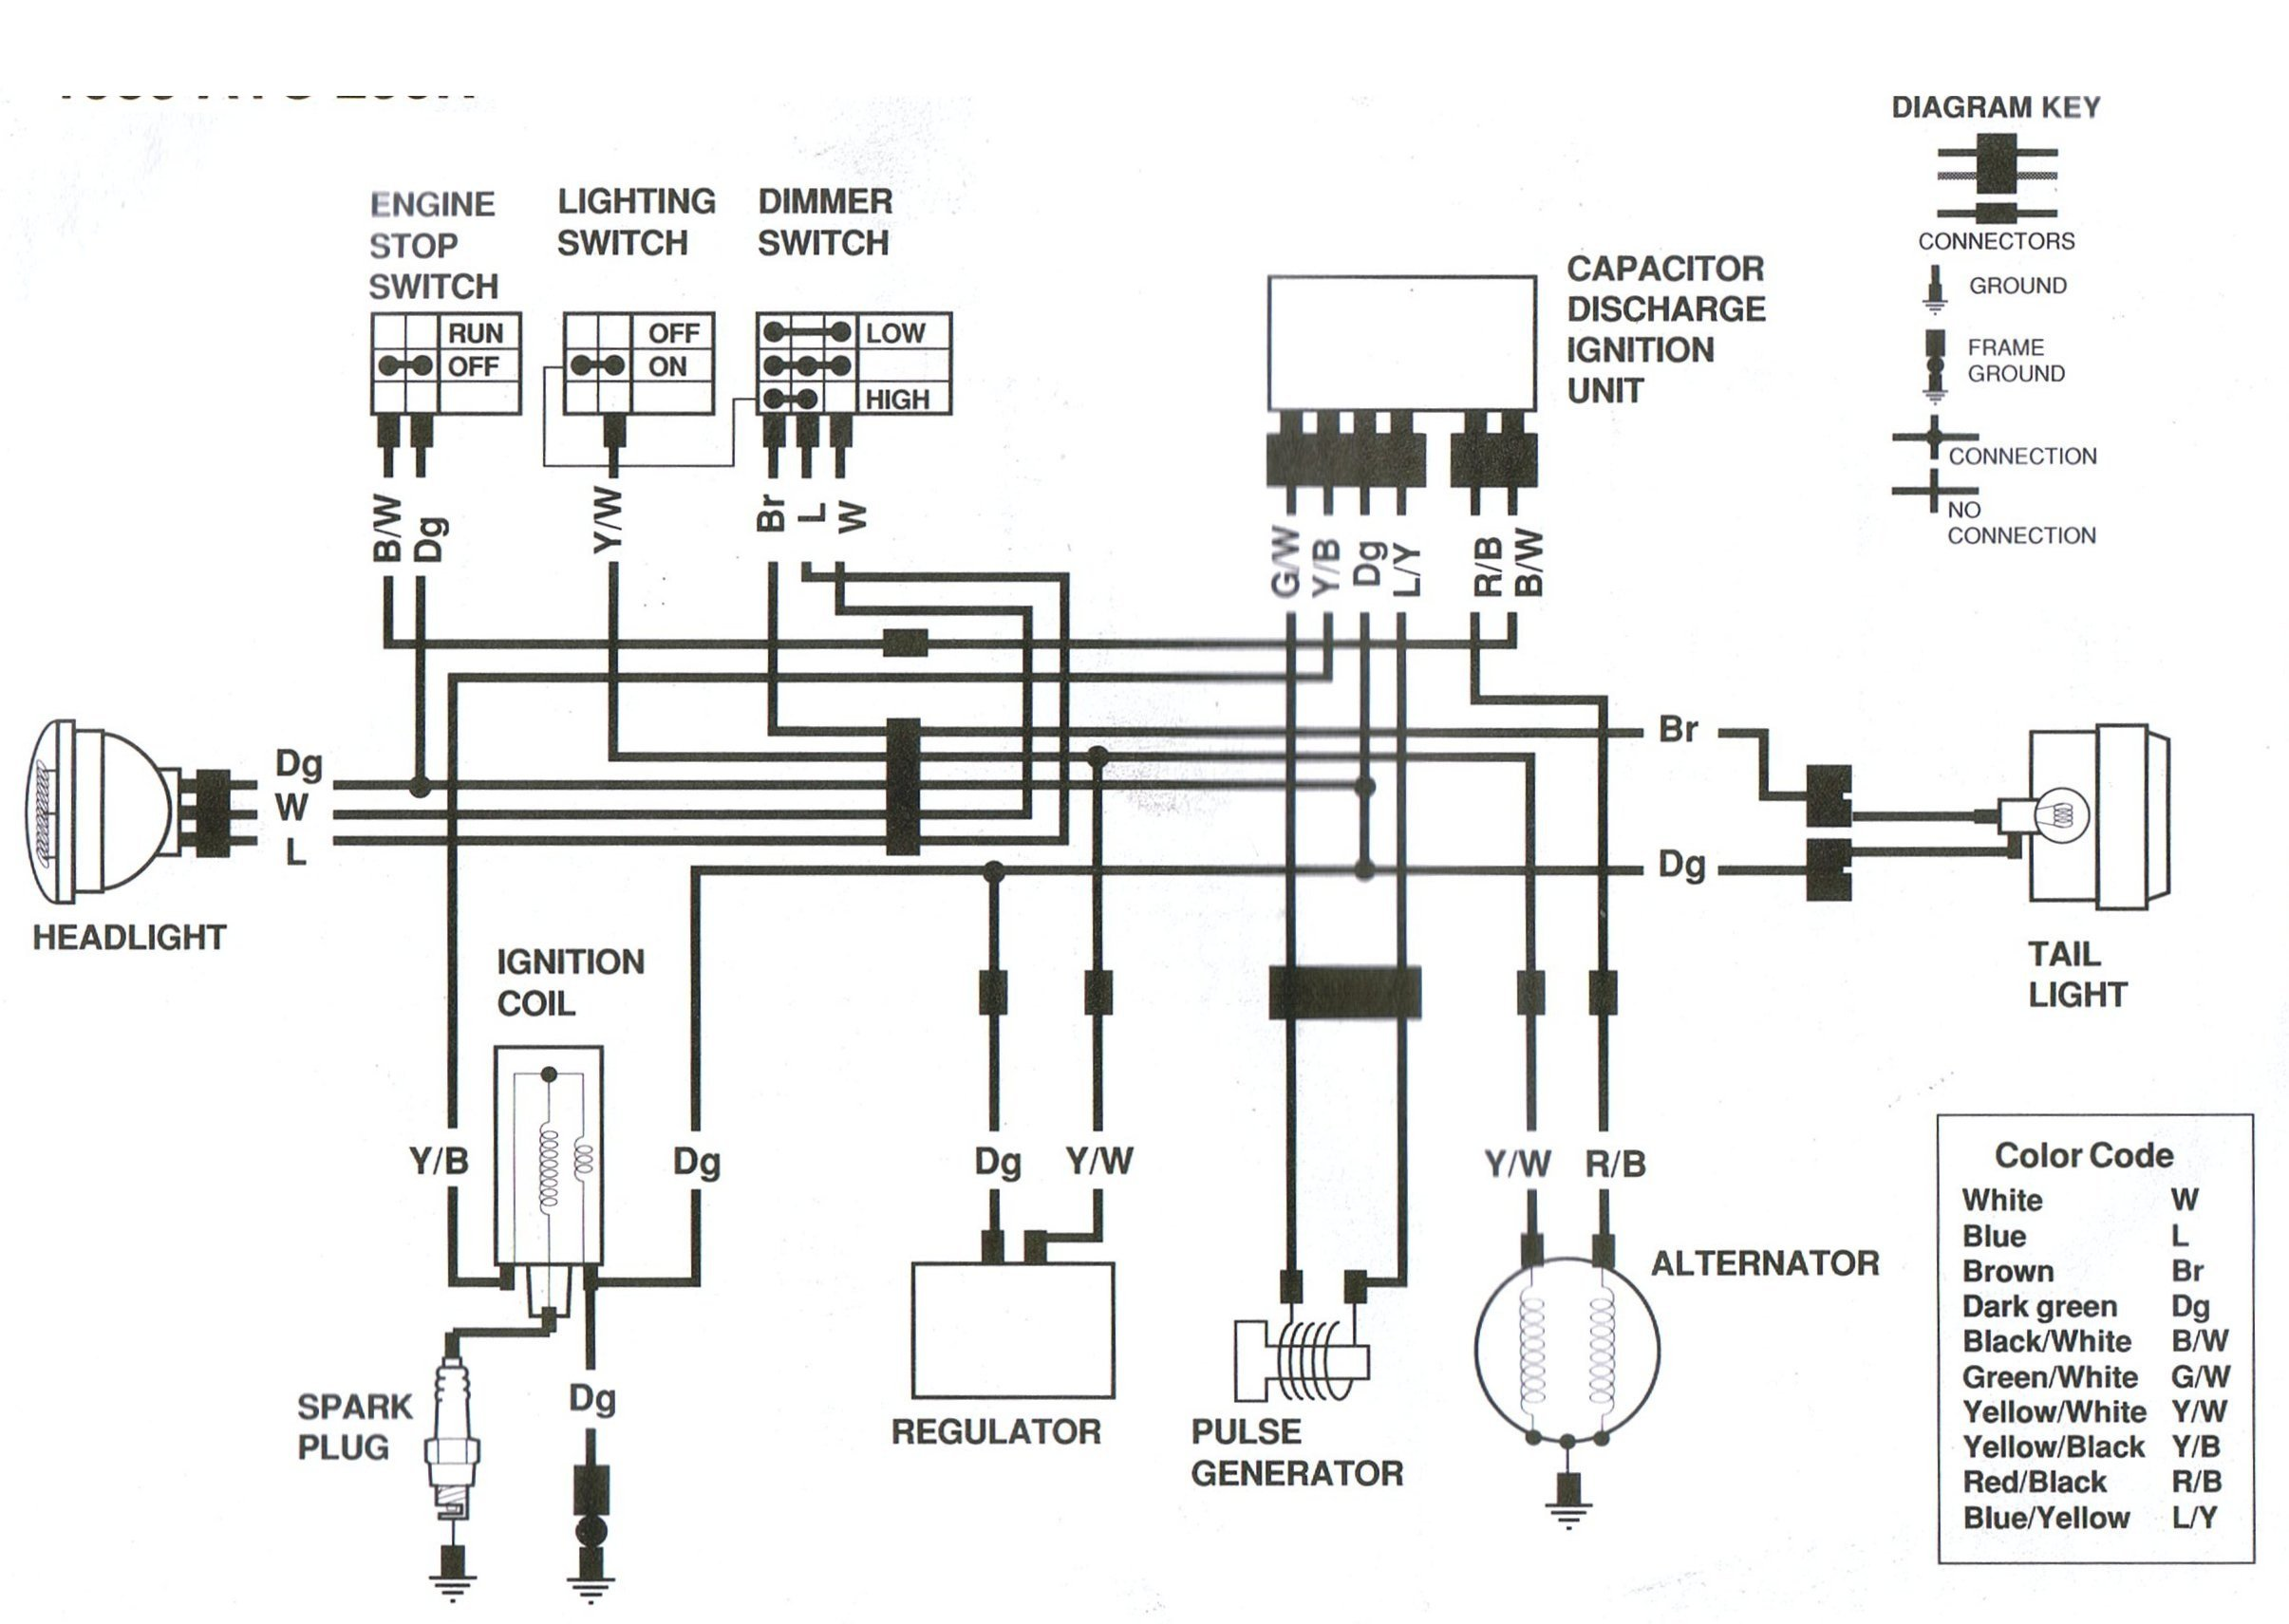 Dodge Diplomat 318 Engine Starter Wiring Diagram